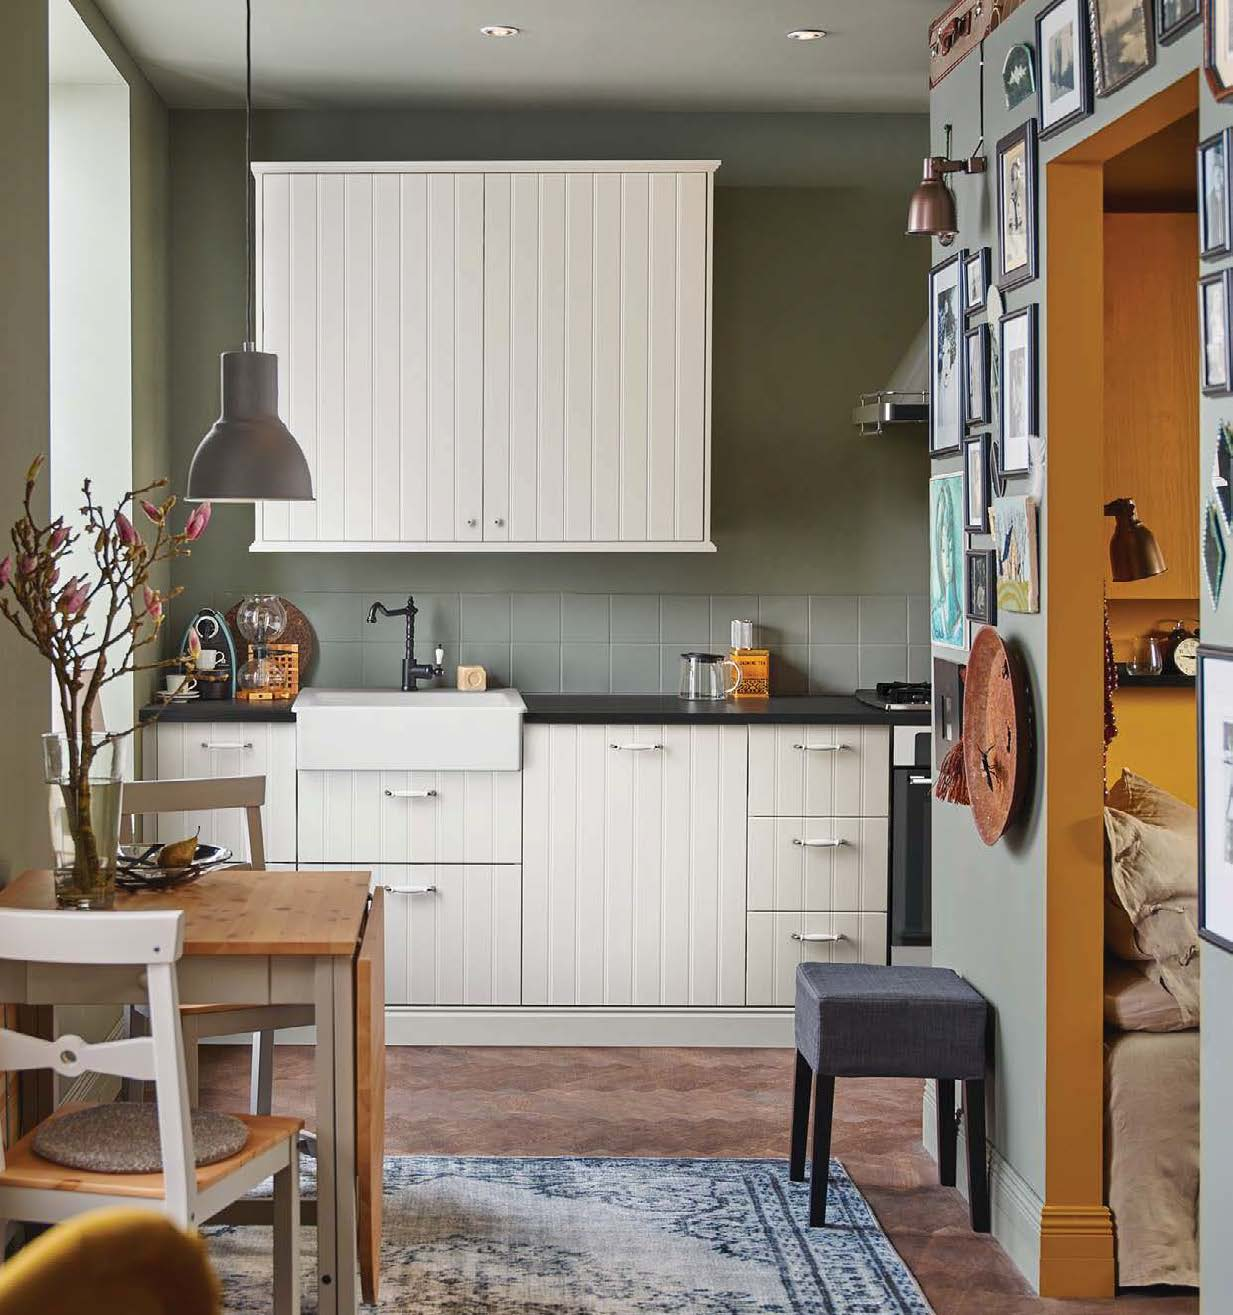 10 Kitchen Cabinet Tips: IKEA 2016 Catalog